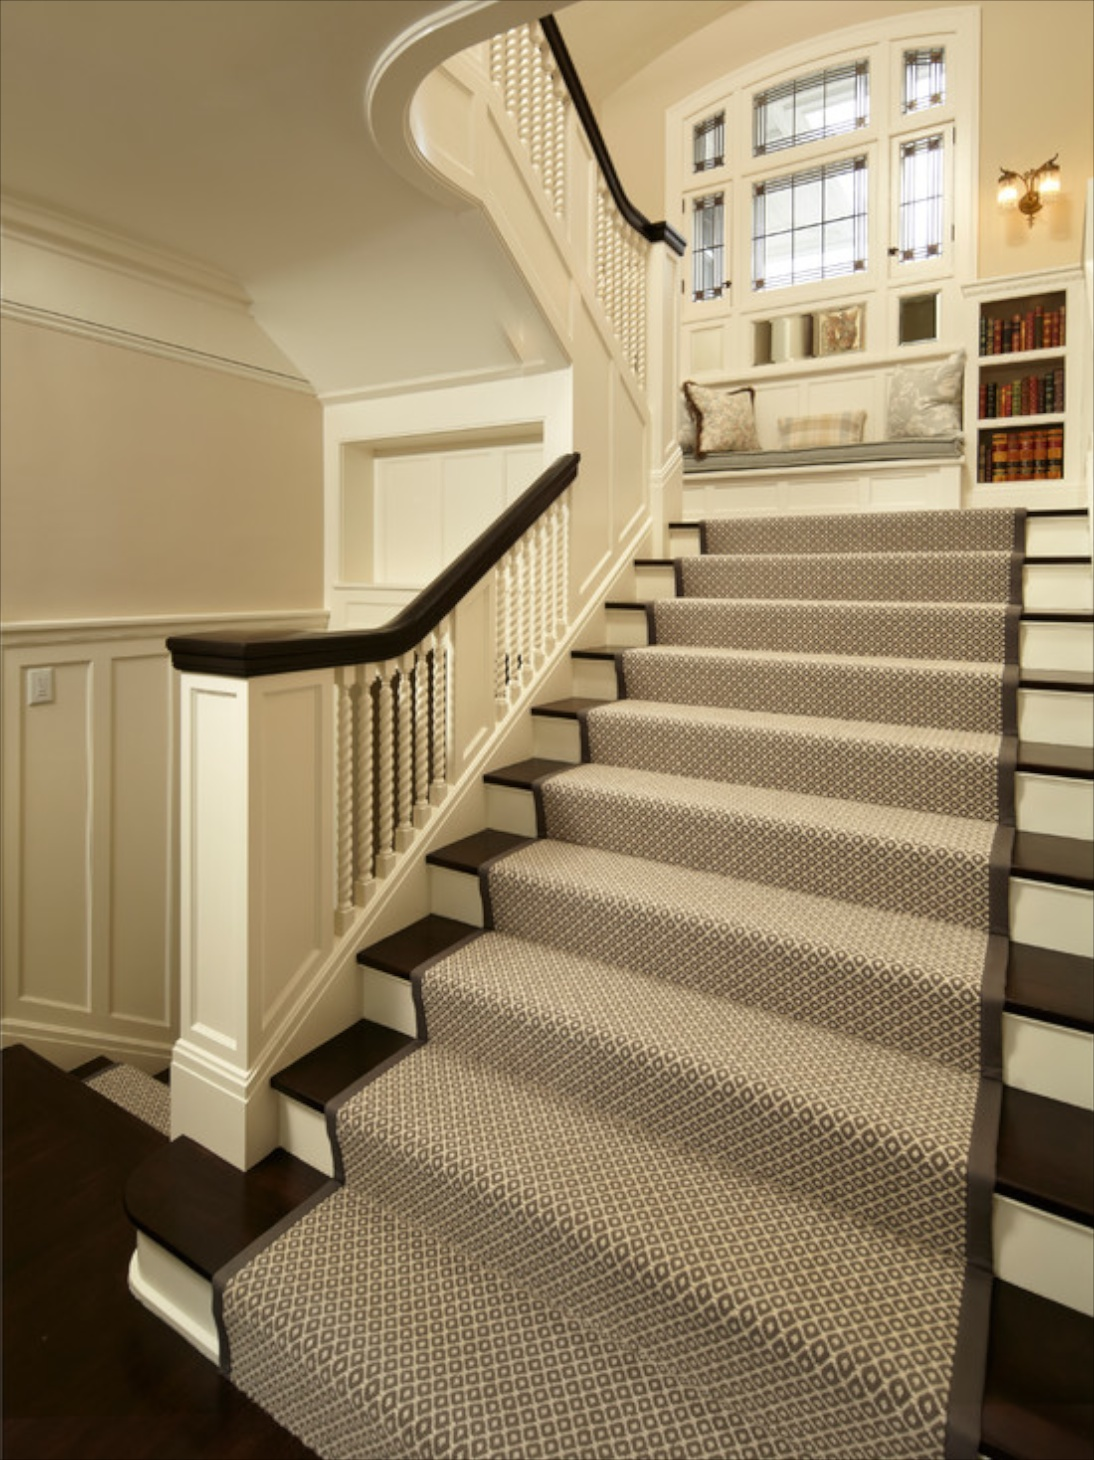 Stairway Designs Add A Descriptionhttp Houzz Carpet Stair Treads